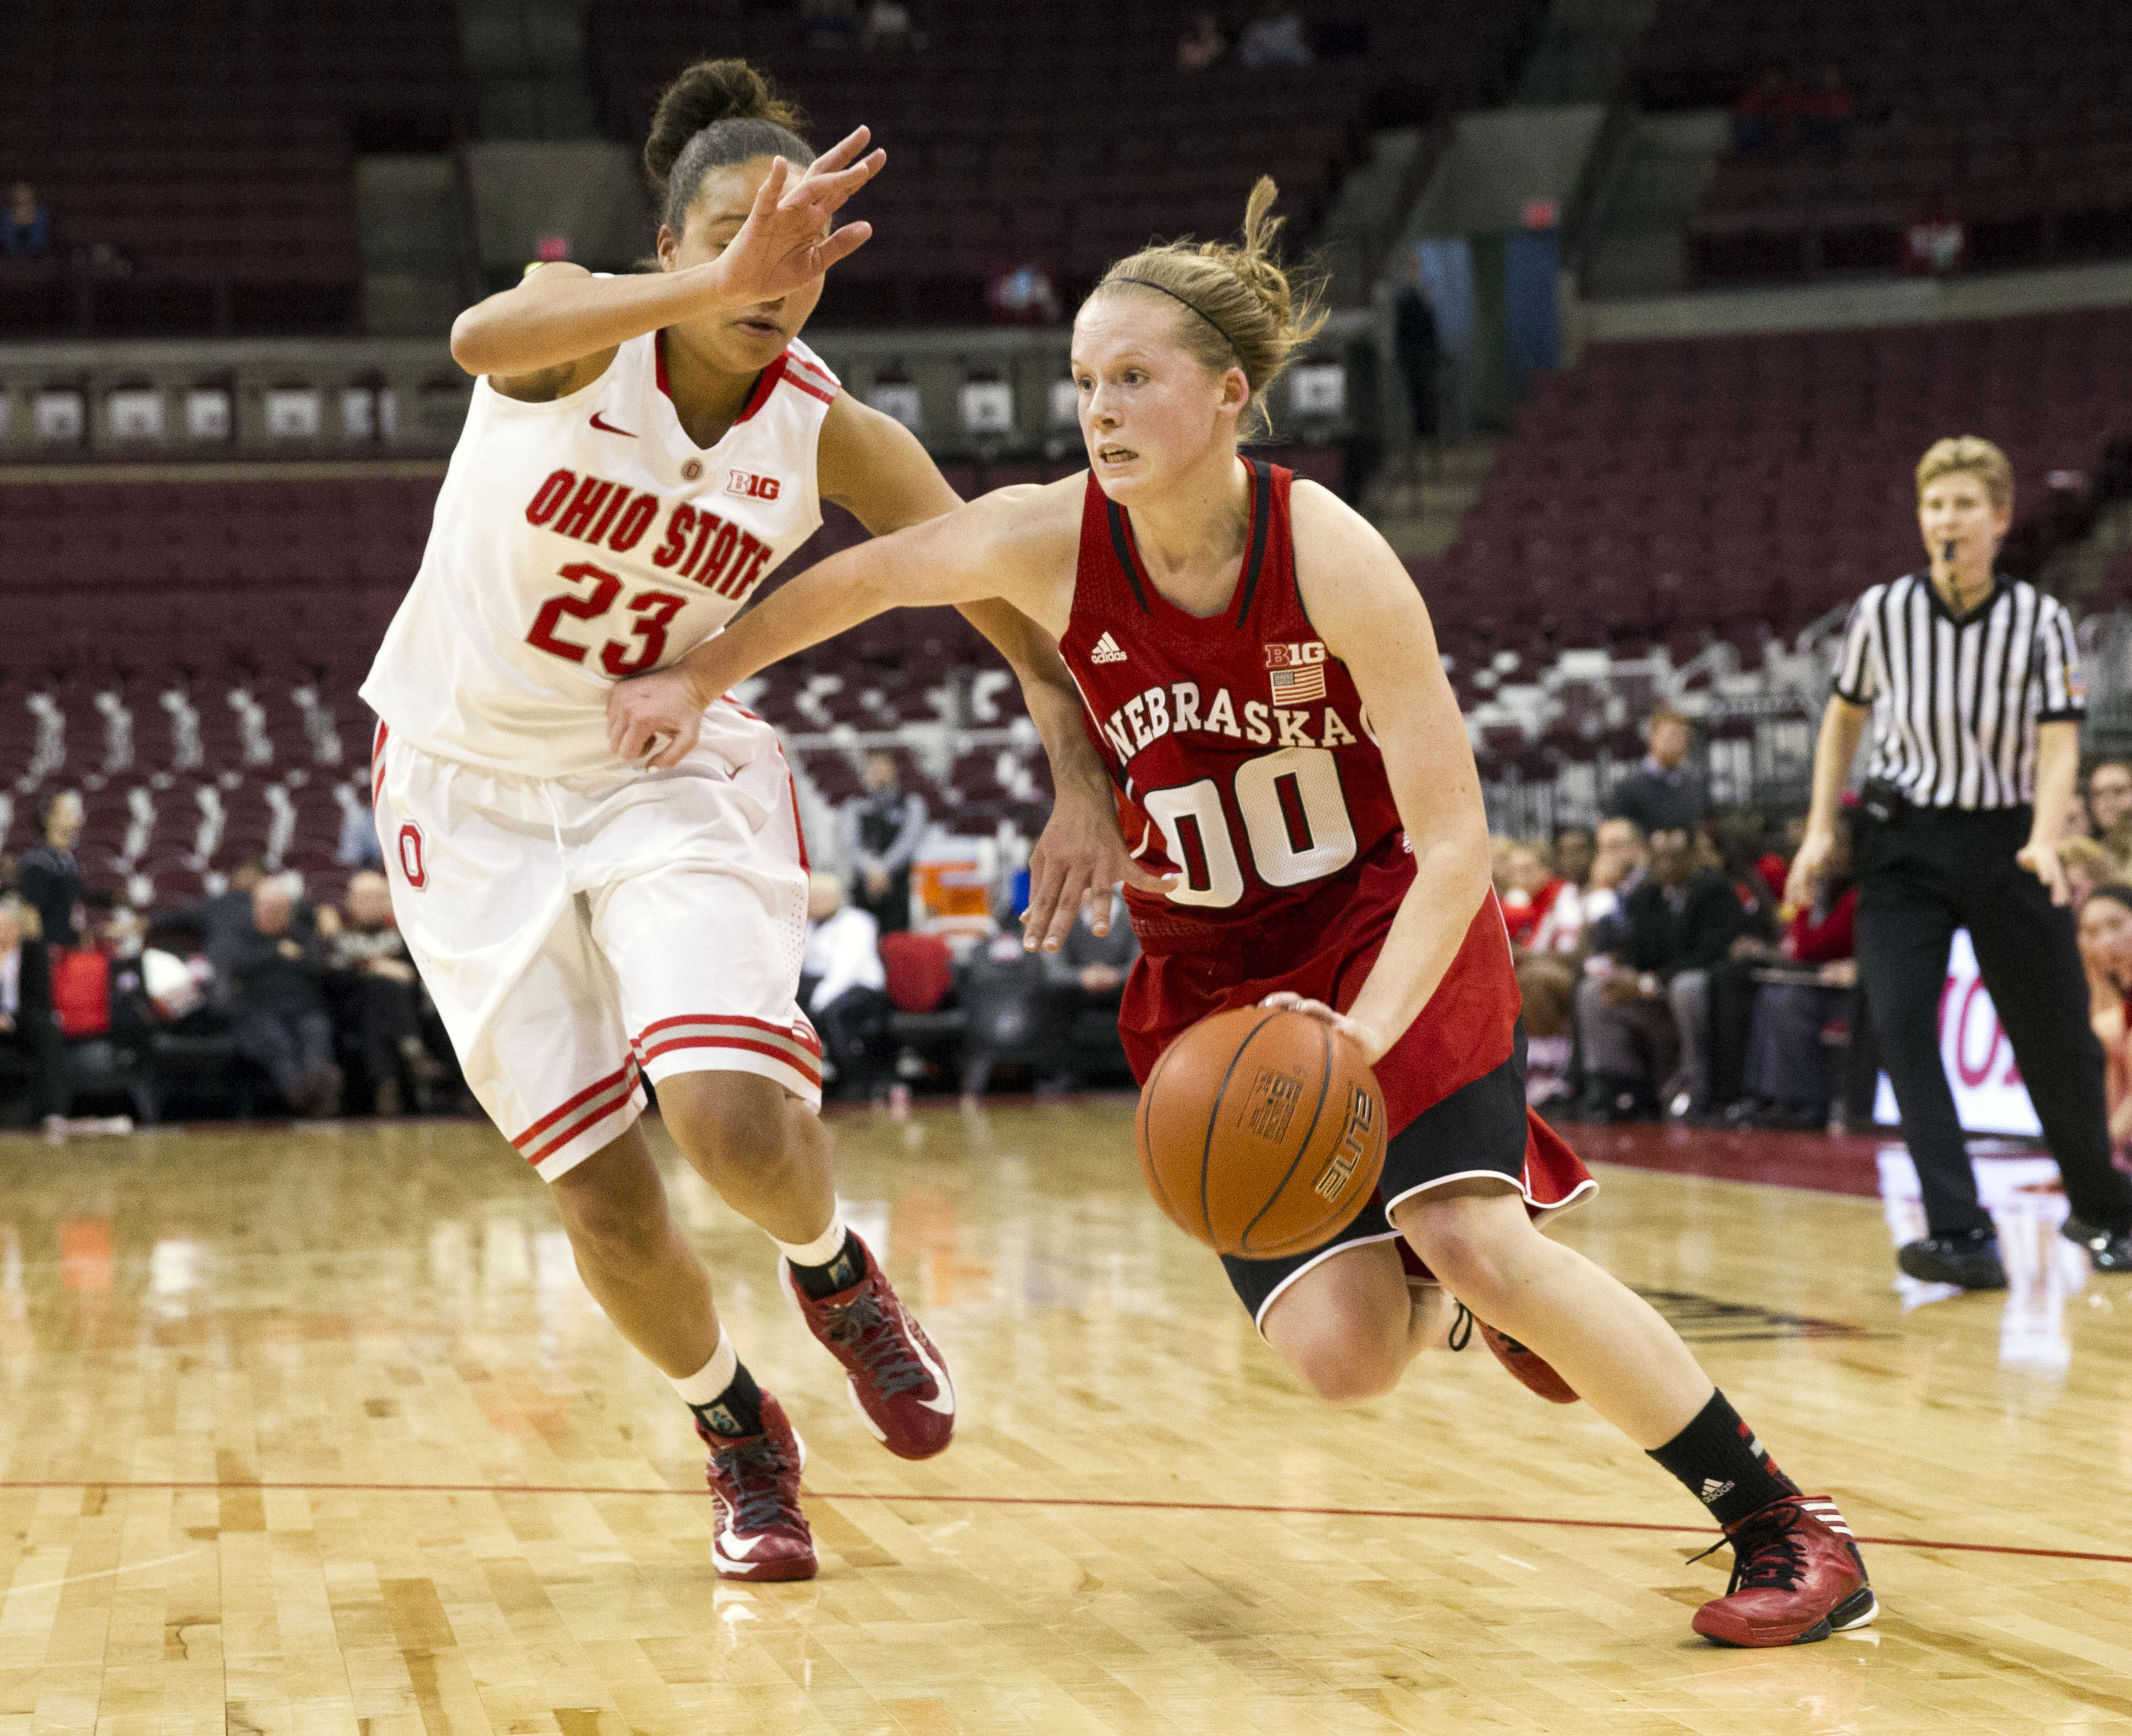 """Nebraska guard Lindsey Moore is considered to be one of the top guards available in the 2013 Draft after the """"Big Three.""""  Could she be a possible """"Plus One"""" type player if drafted onto the right team?"""